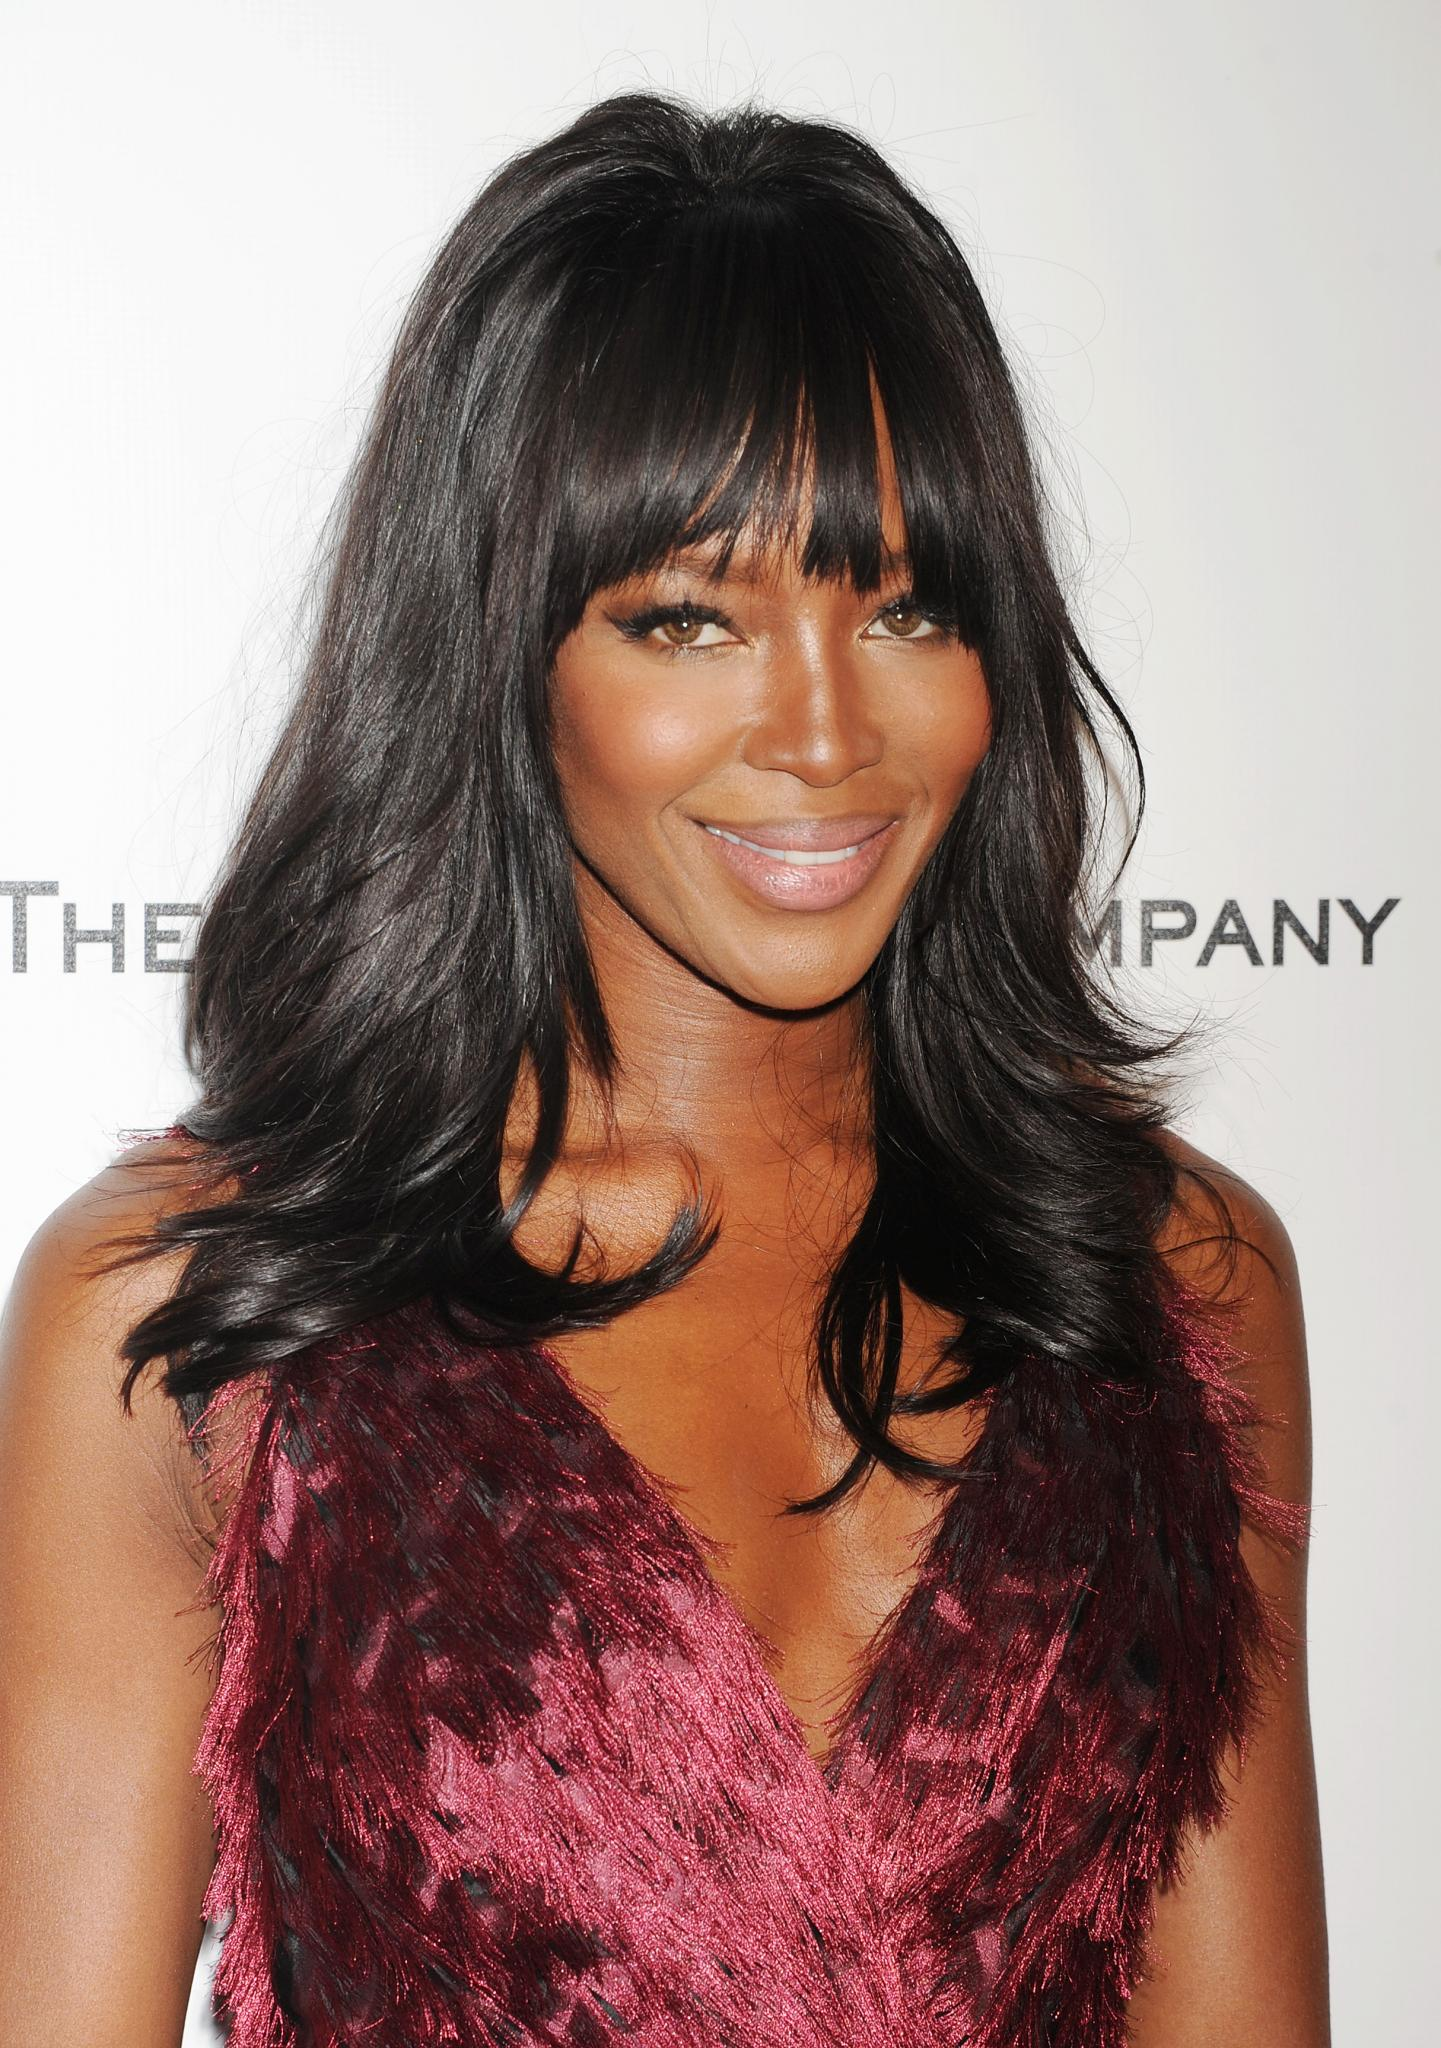 Naomi Campbell to Instagram Models: 'We Had to Earn Our Stripes'